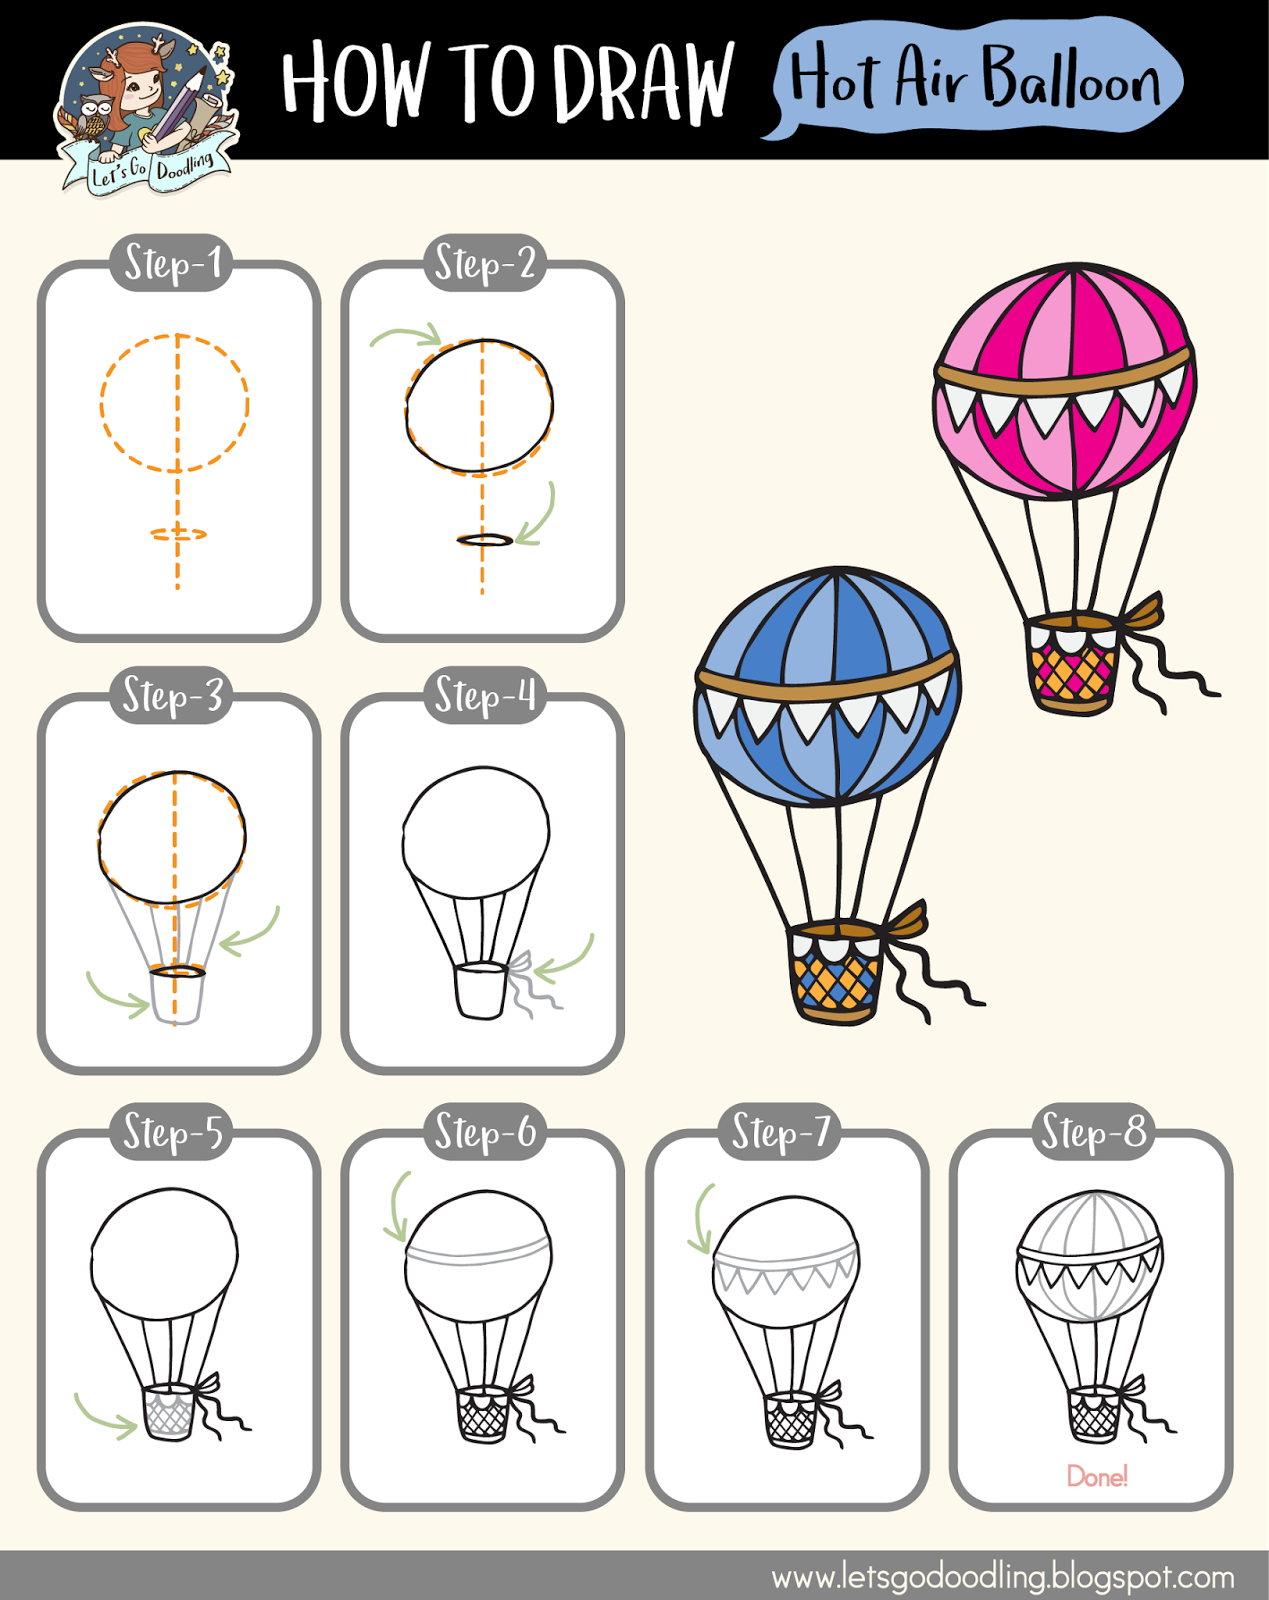 How To Draw Hot Air Balloon - Easy Step By Step Drawing ...